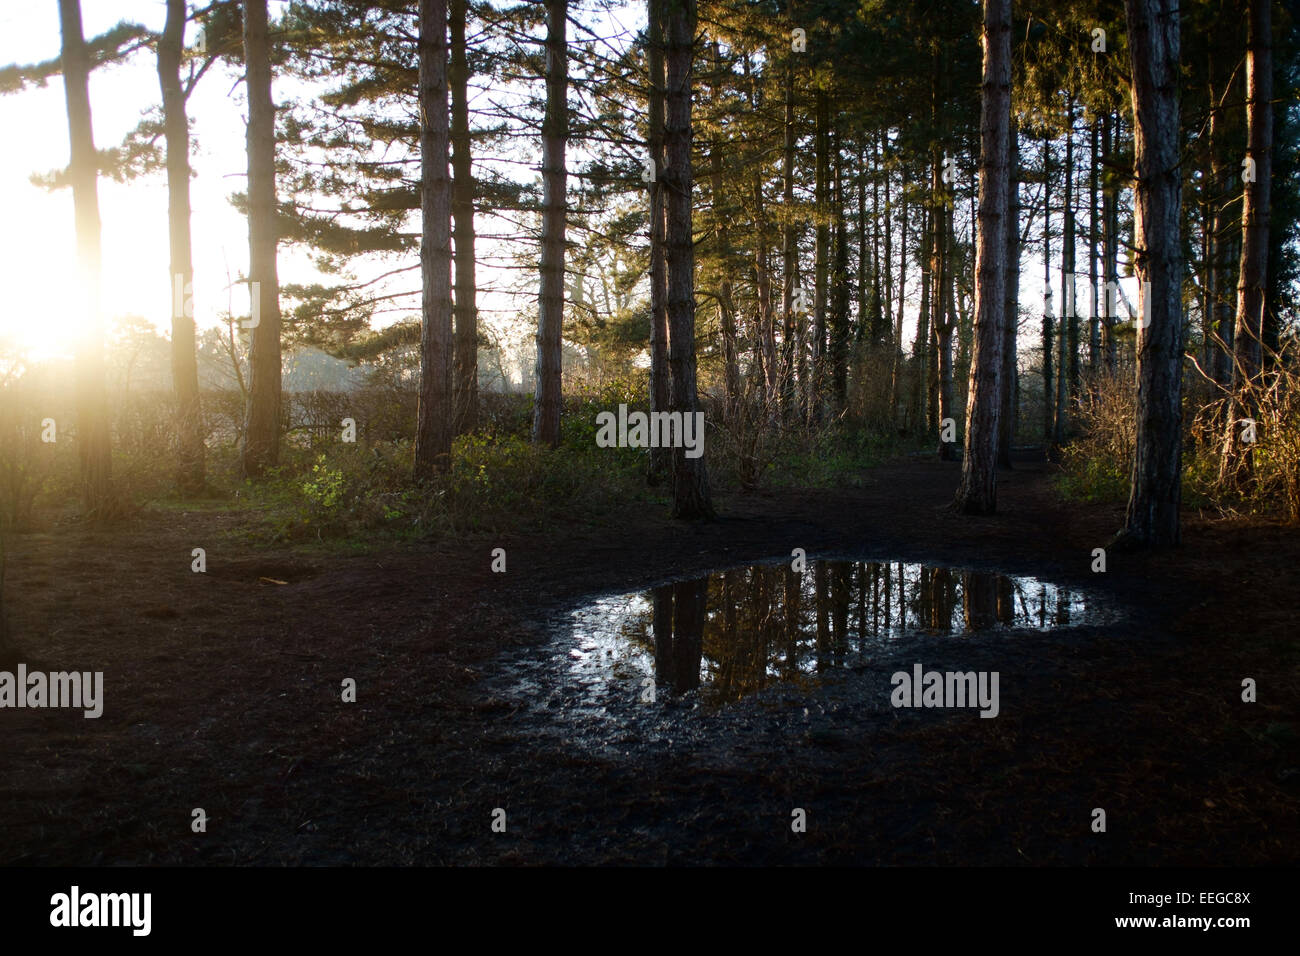 Woodland in winter sunlight - Stock Image